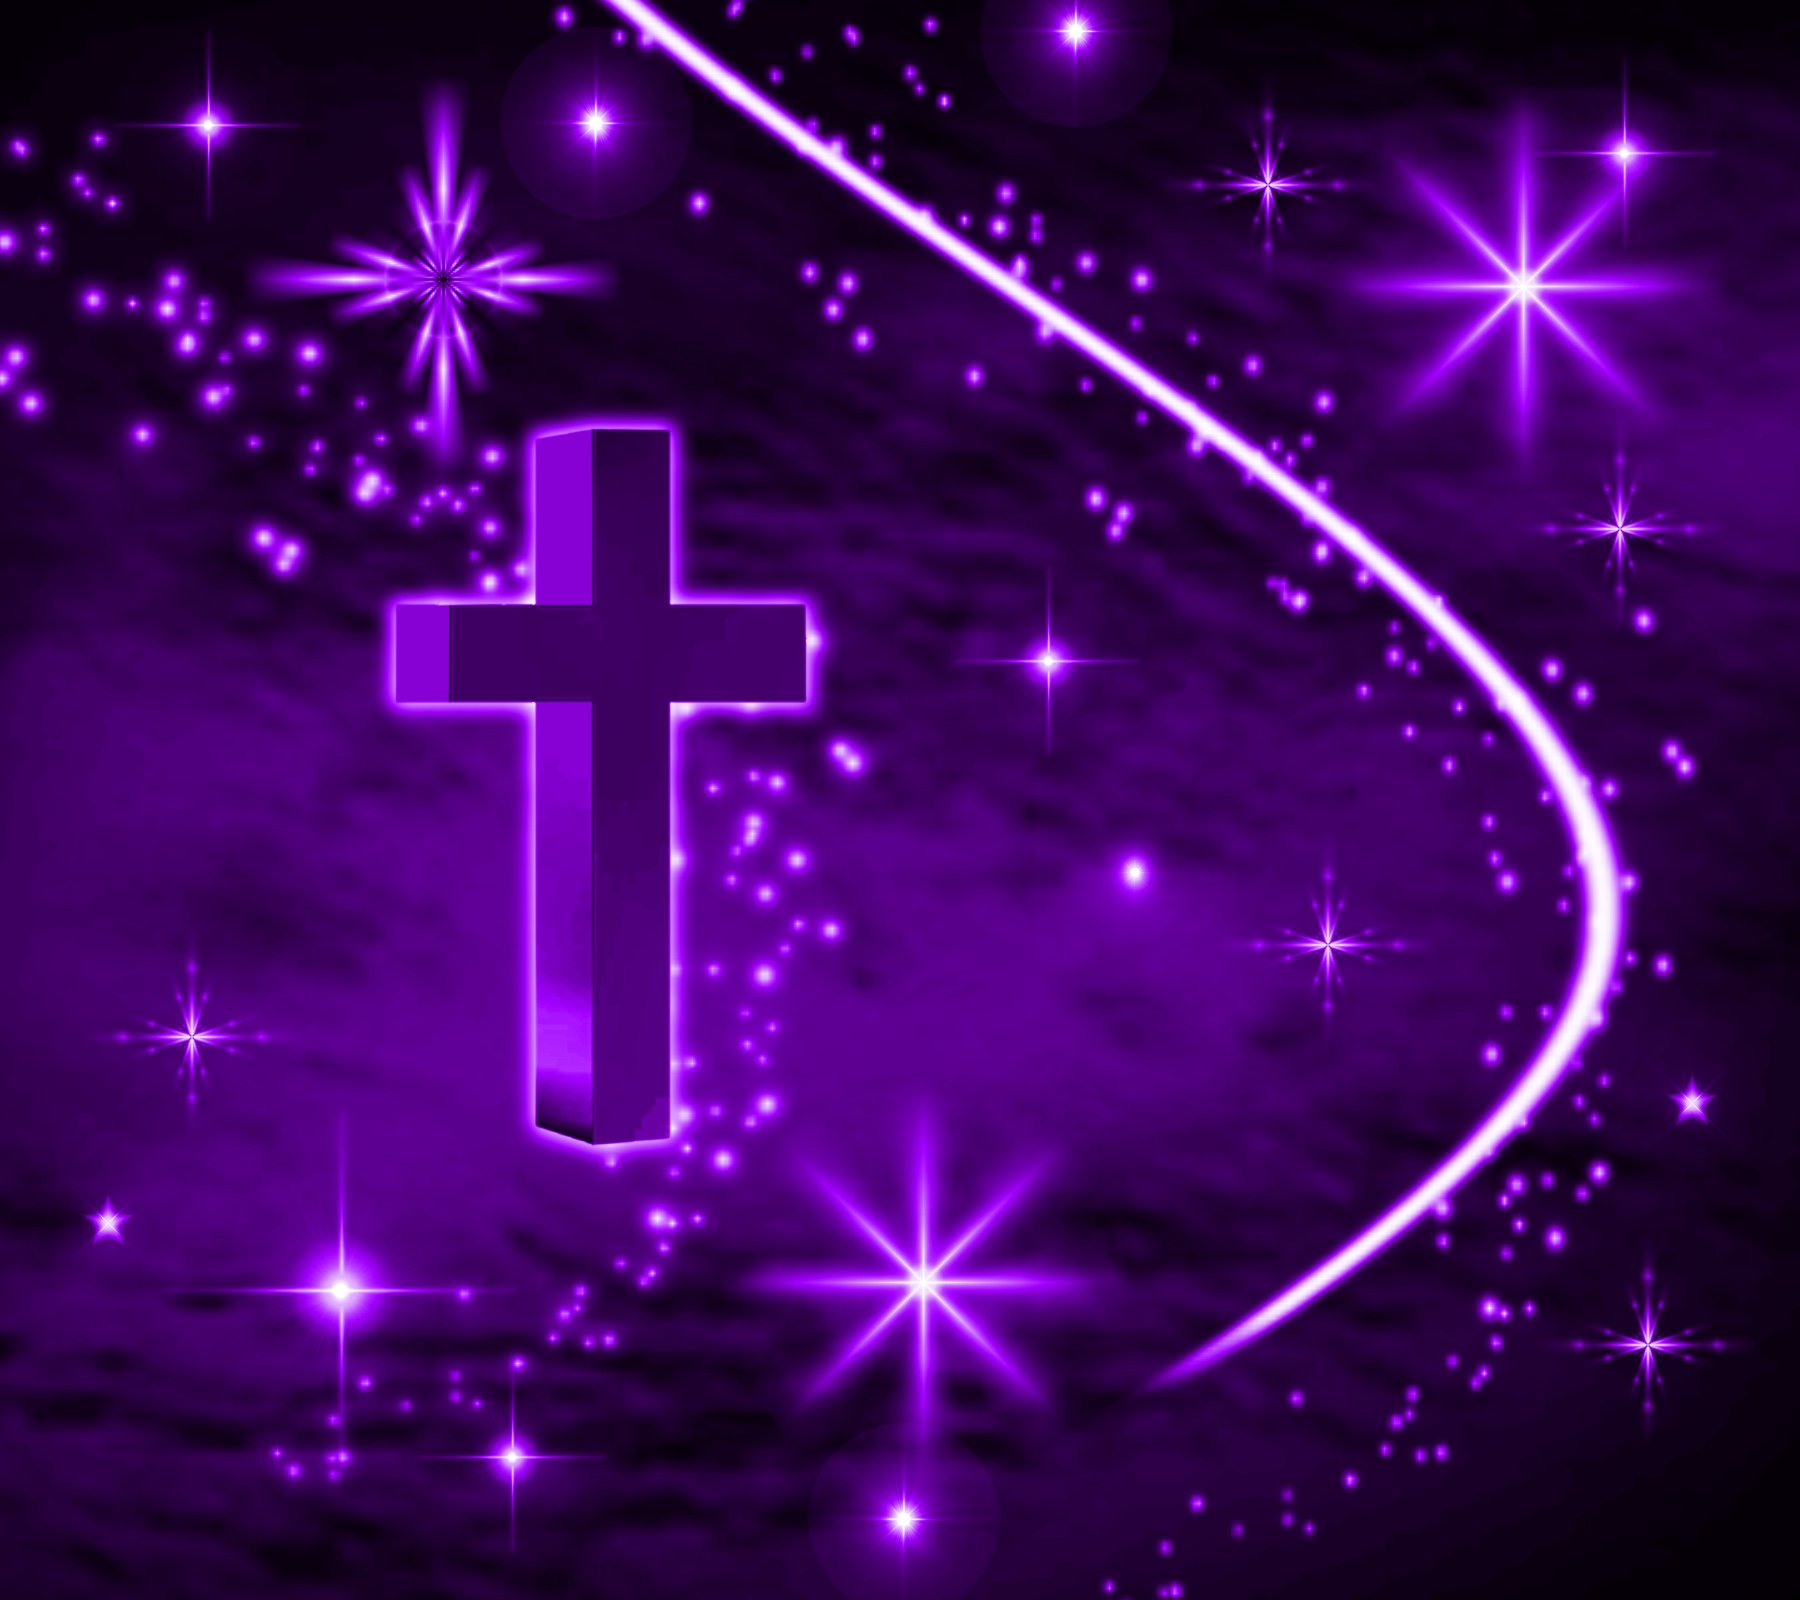 Purple Christmas Backgrounds Wallpapers9 1800x1600